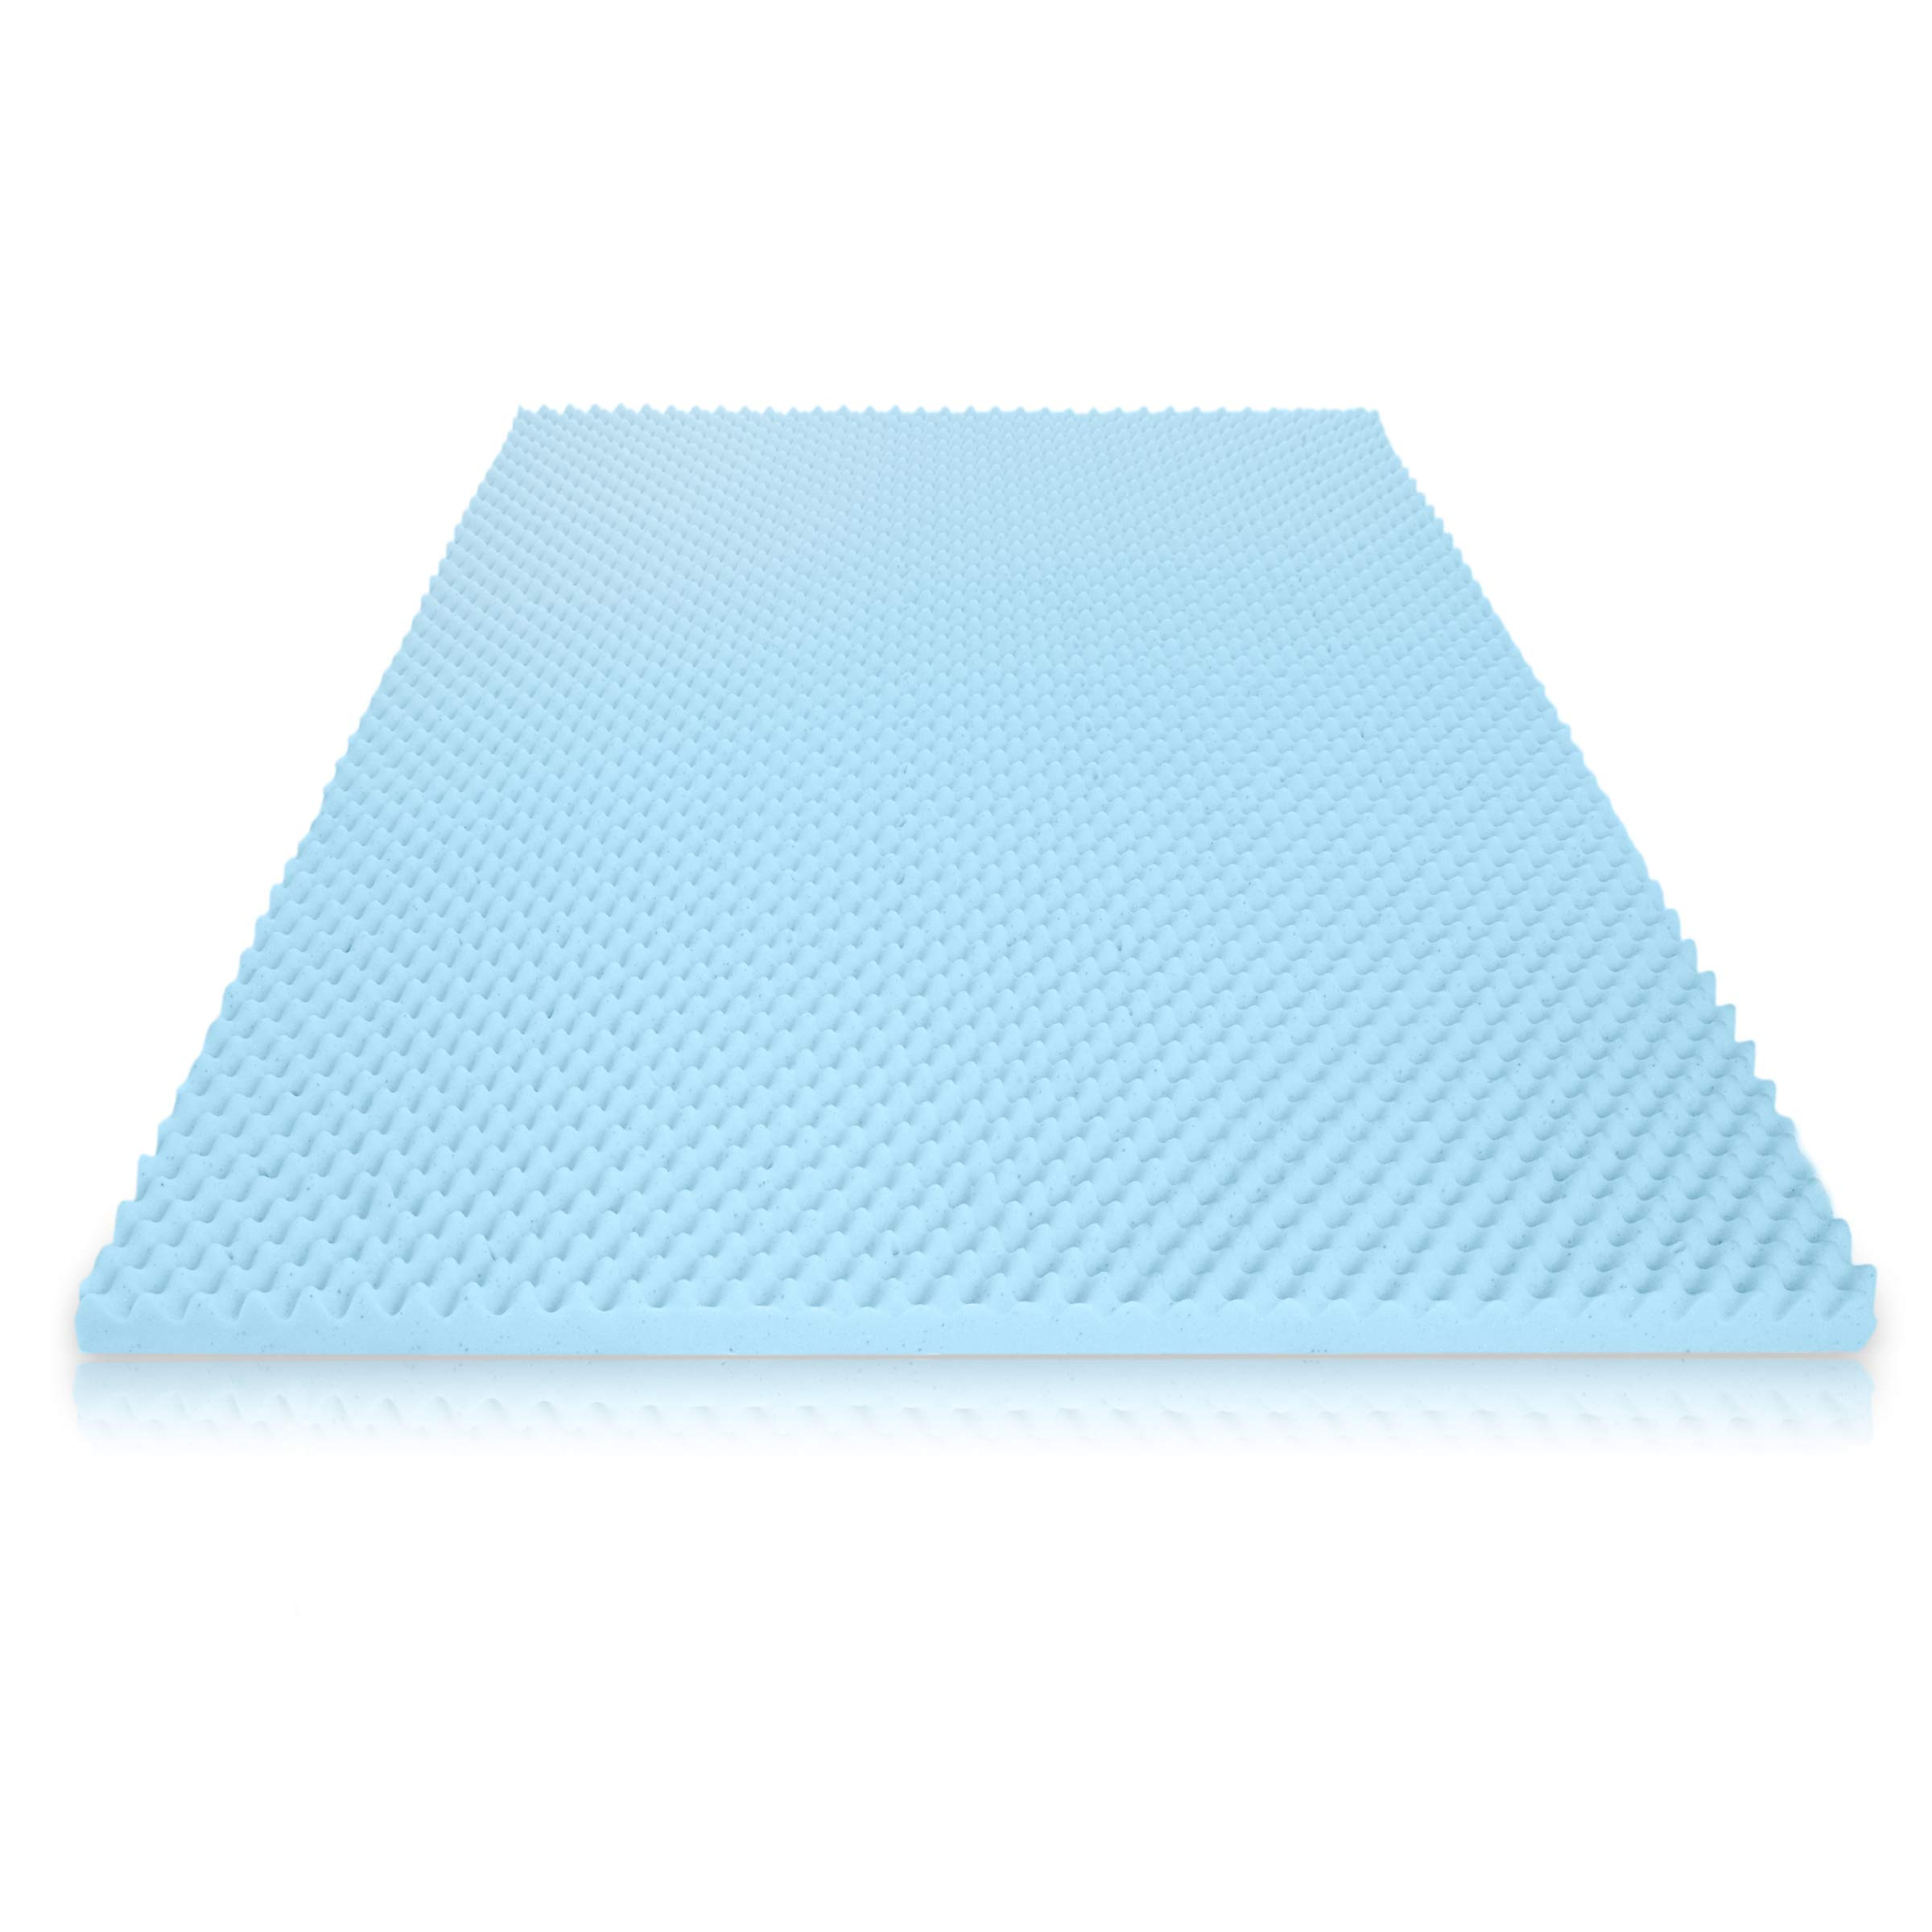 Milliard 2in. Egg Crate Gel Memory Foam Mattress Topper - Twin, Mattress Pad Provides Great Pressure Relief, Gel Infusion Contributes to a Cooler Night Sleep (Twin) by Milliard